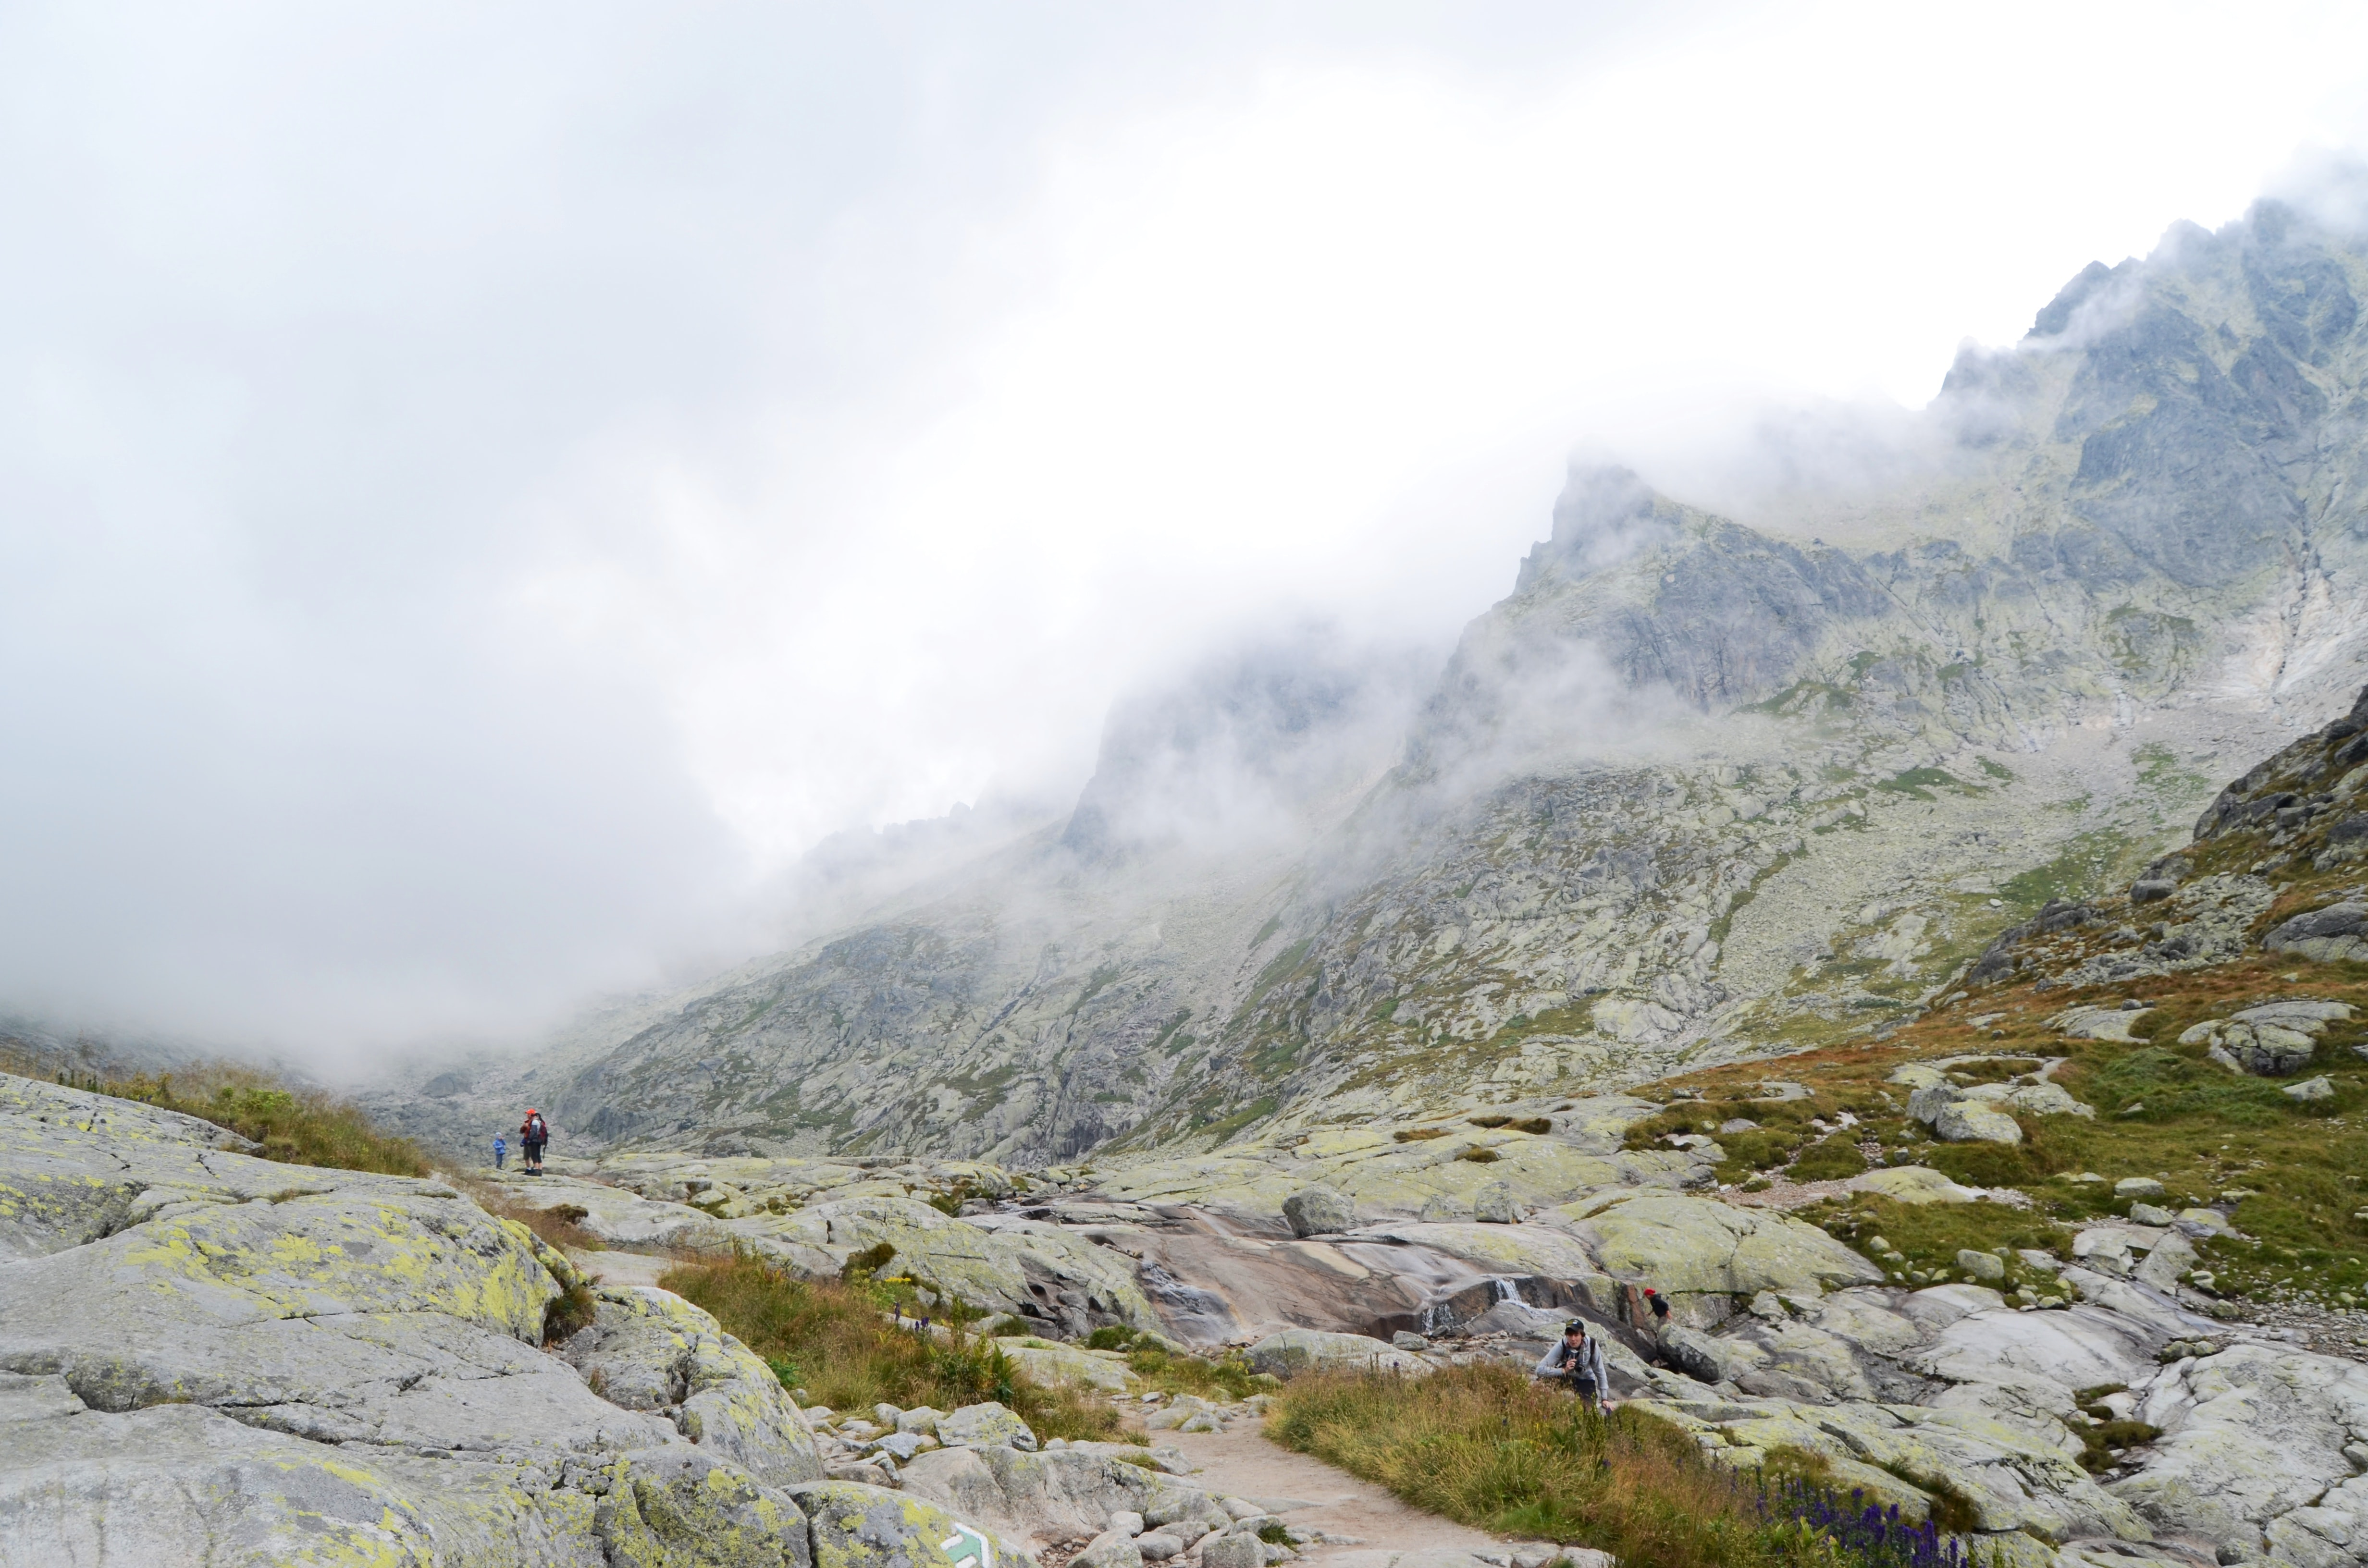 Rocky hiking paths by mossy hillsides and foggy mountains